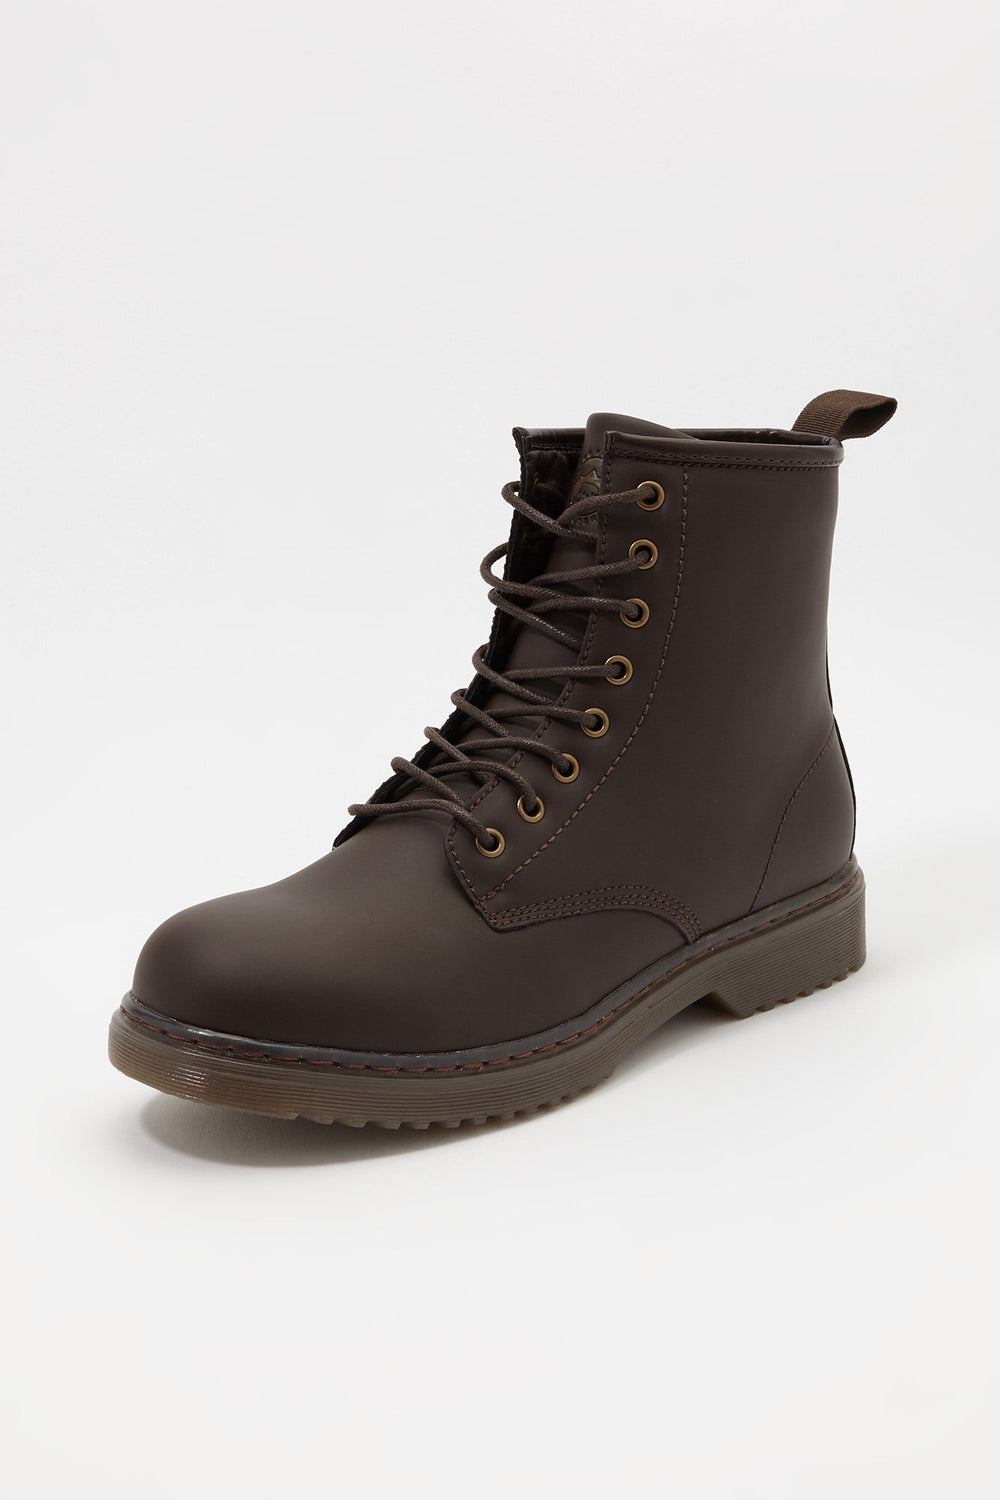 Storm Mountain Mens Casual Lace-Up Boots Dark Brown